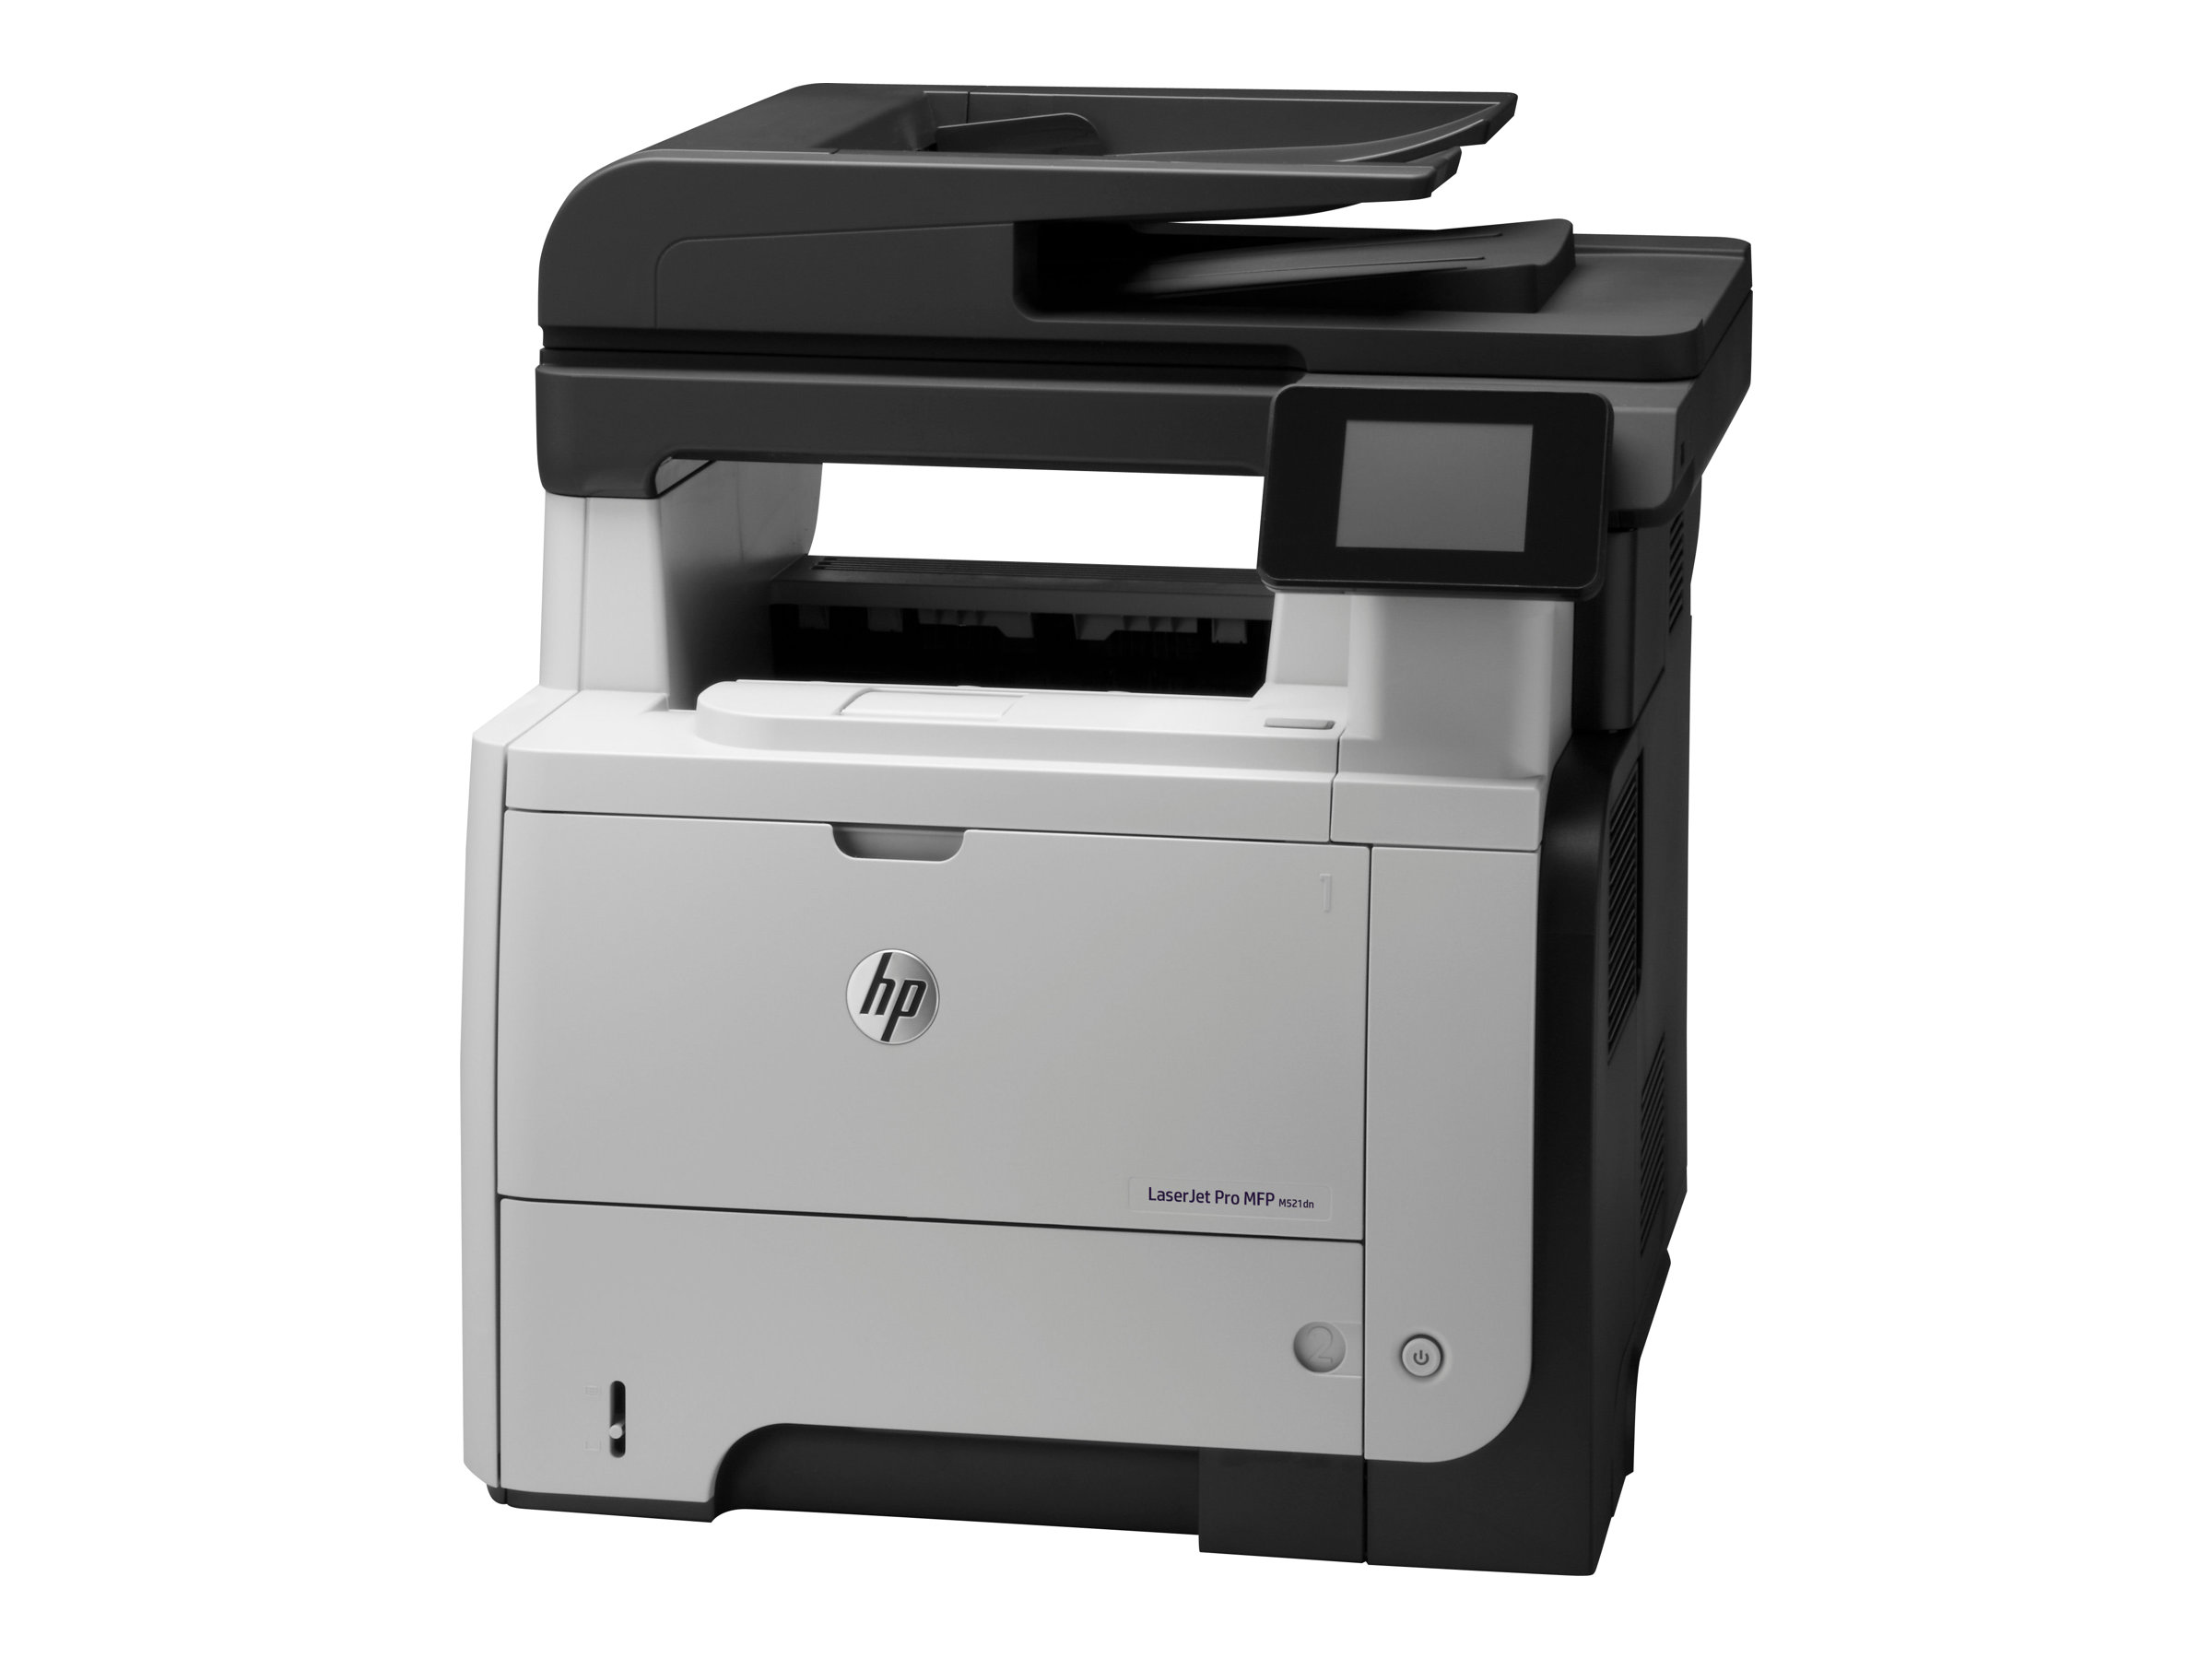 hp laserjet pro mfp m521dn imprimante multifonctions monochrome laser imprimantes laser. Black Bedroom Furniture Sets. Home Design Ideas